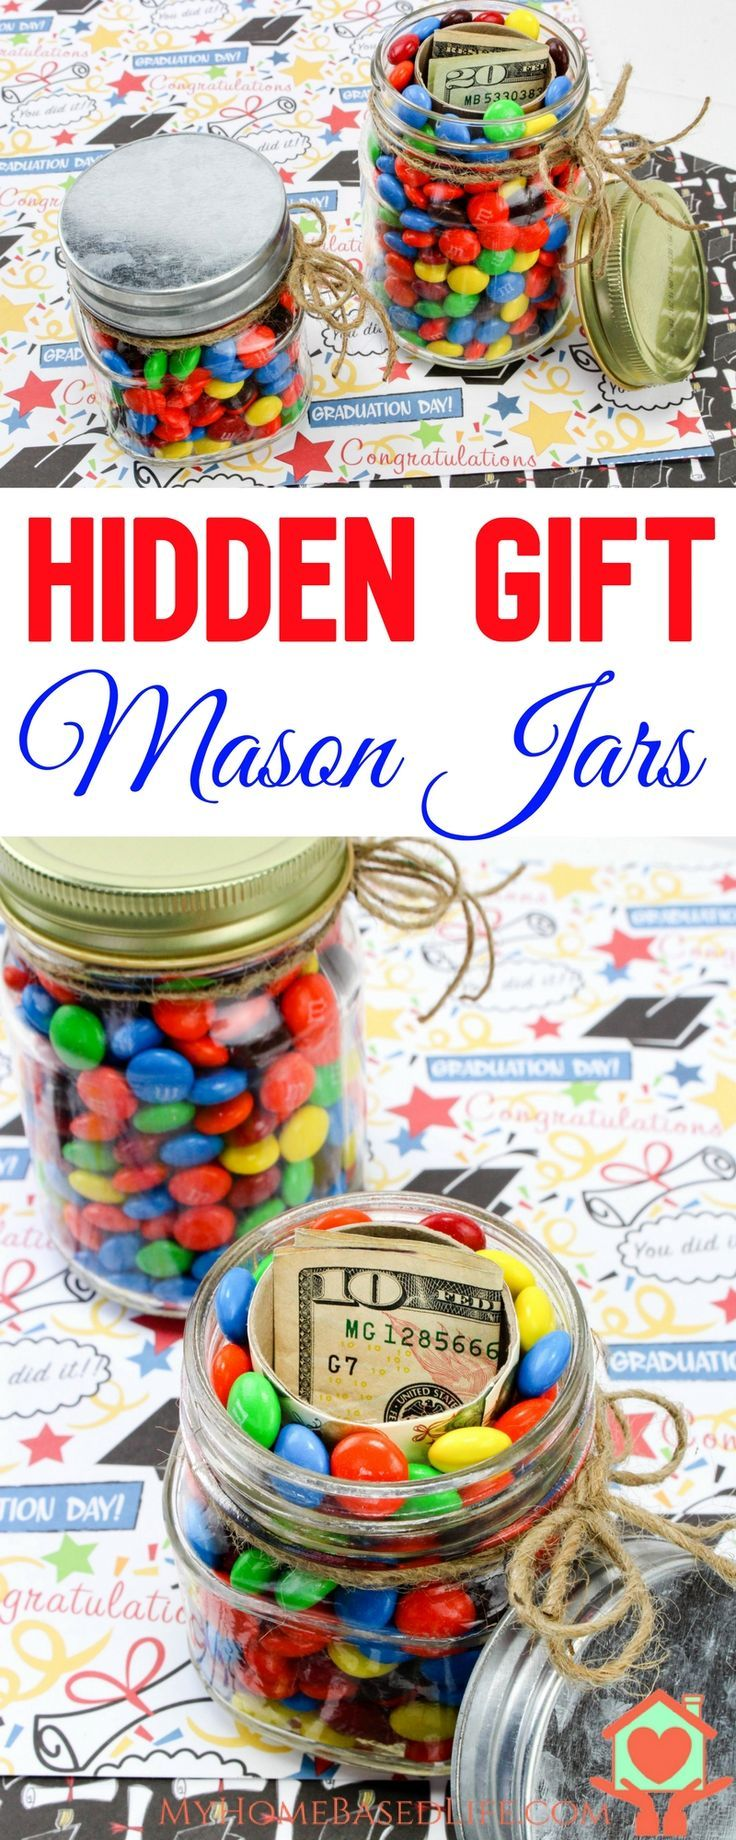 Perfect gift idea for all ages hidden gifts in a jar hidden gift